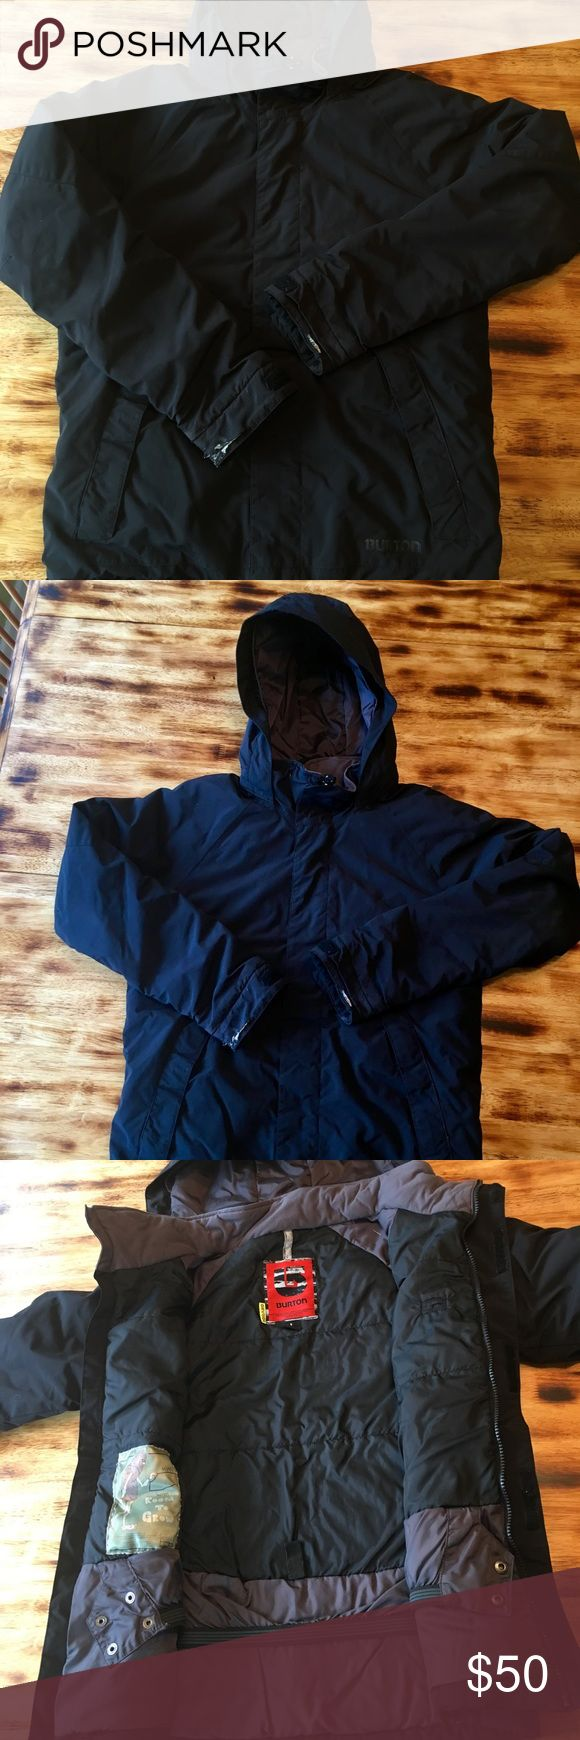 Boys Winter coat Boys black snowboard jacket by Burton-size L Some rips on cuffs from tow rope, otherwise in good shape Burton Jackets & Coats